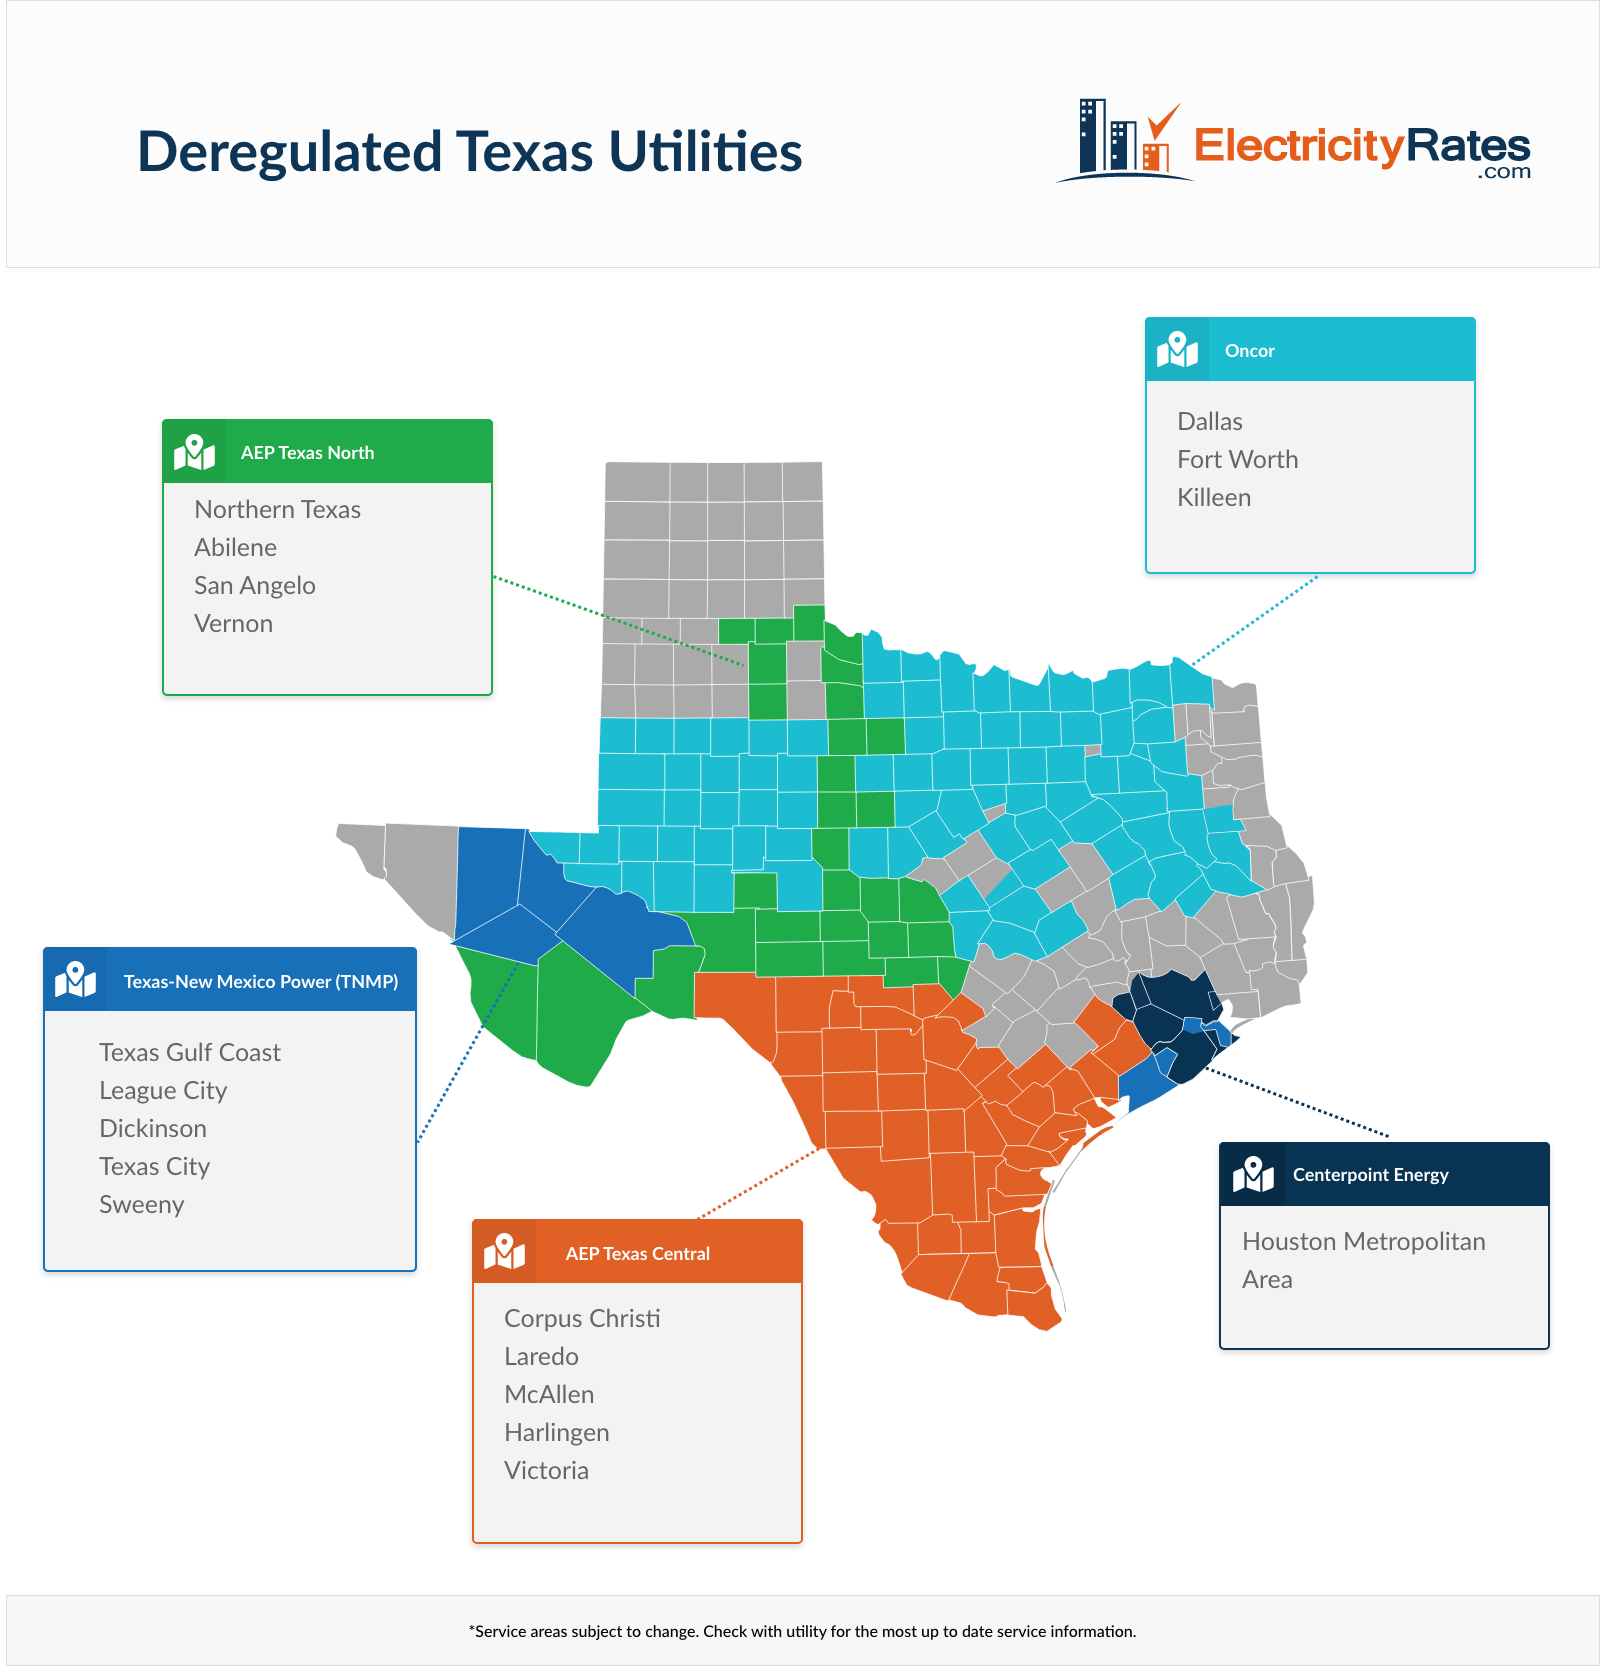 Deregulated Texas Utilities Map